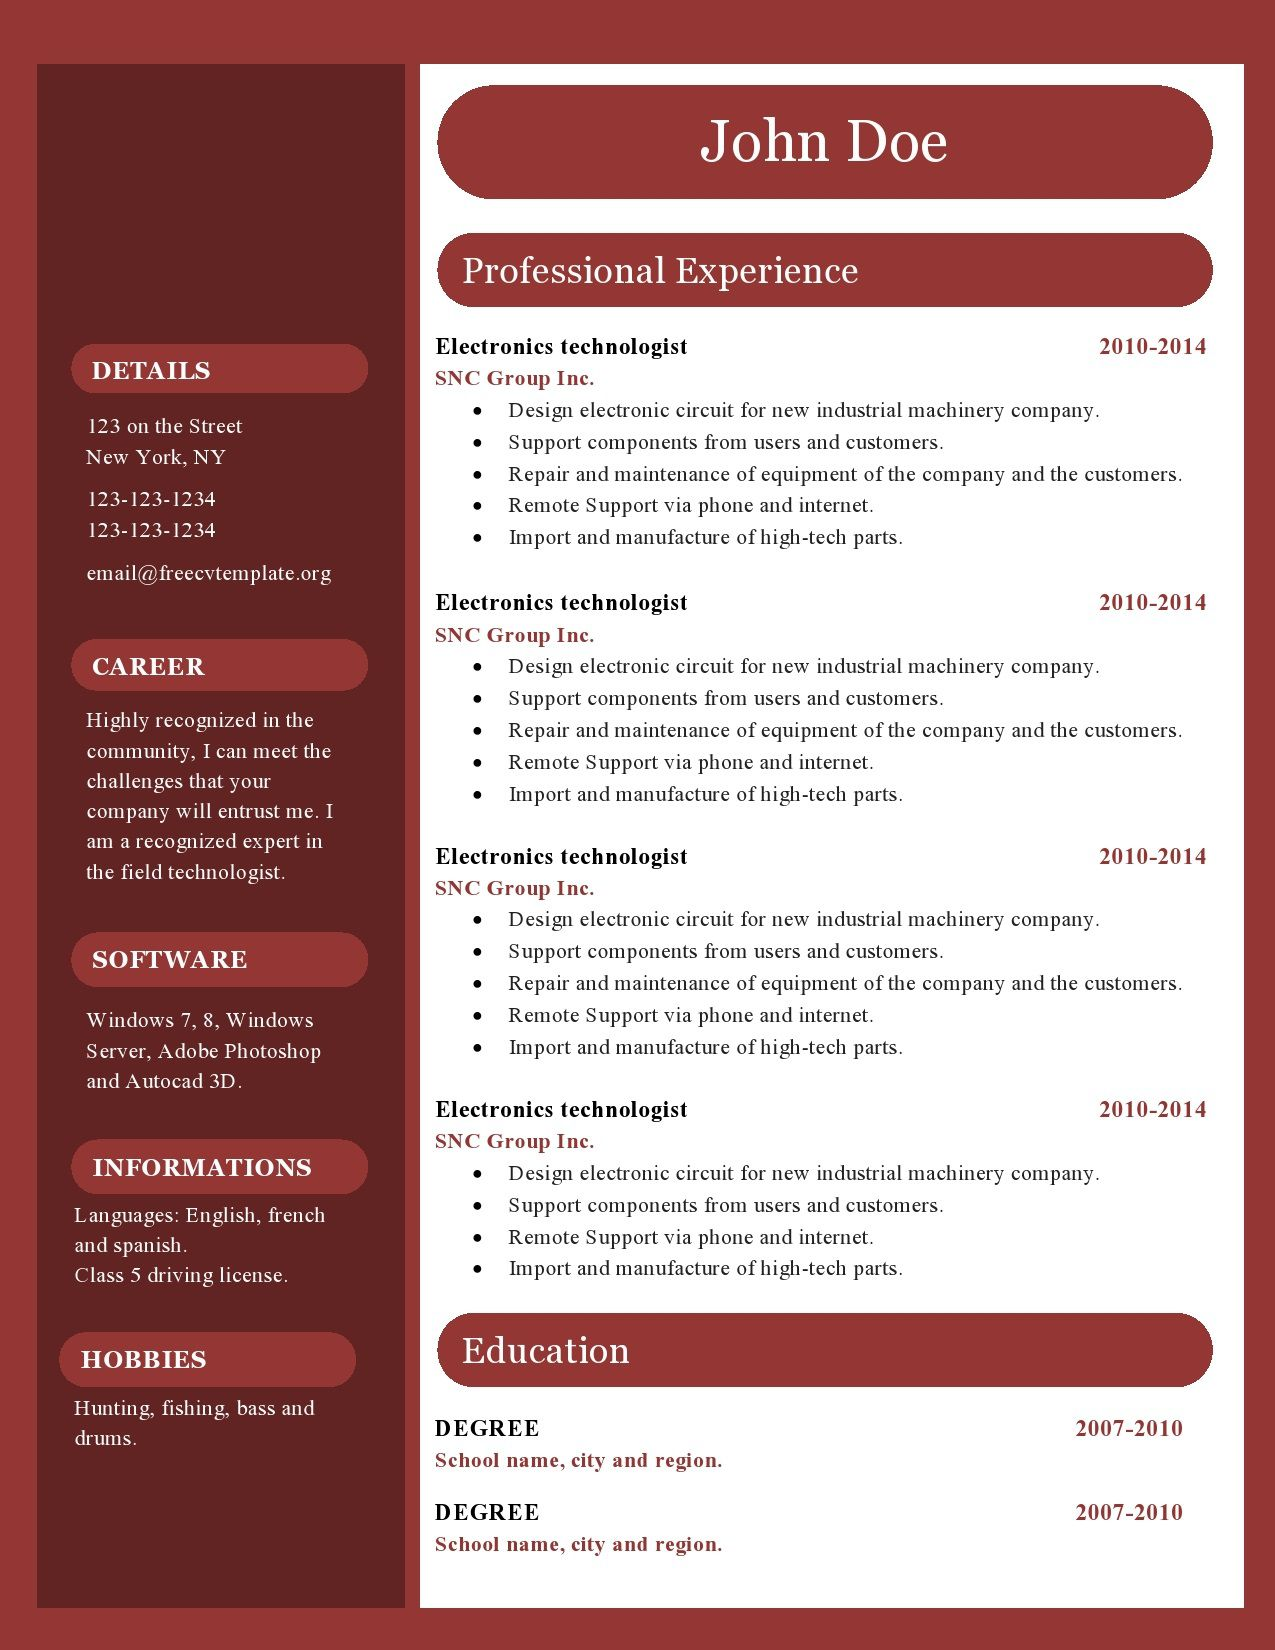 004 Unique Free Resume Template Microsoft Office Word 2007 Highest Clarity Full